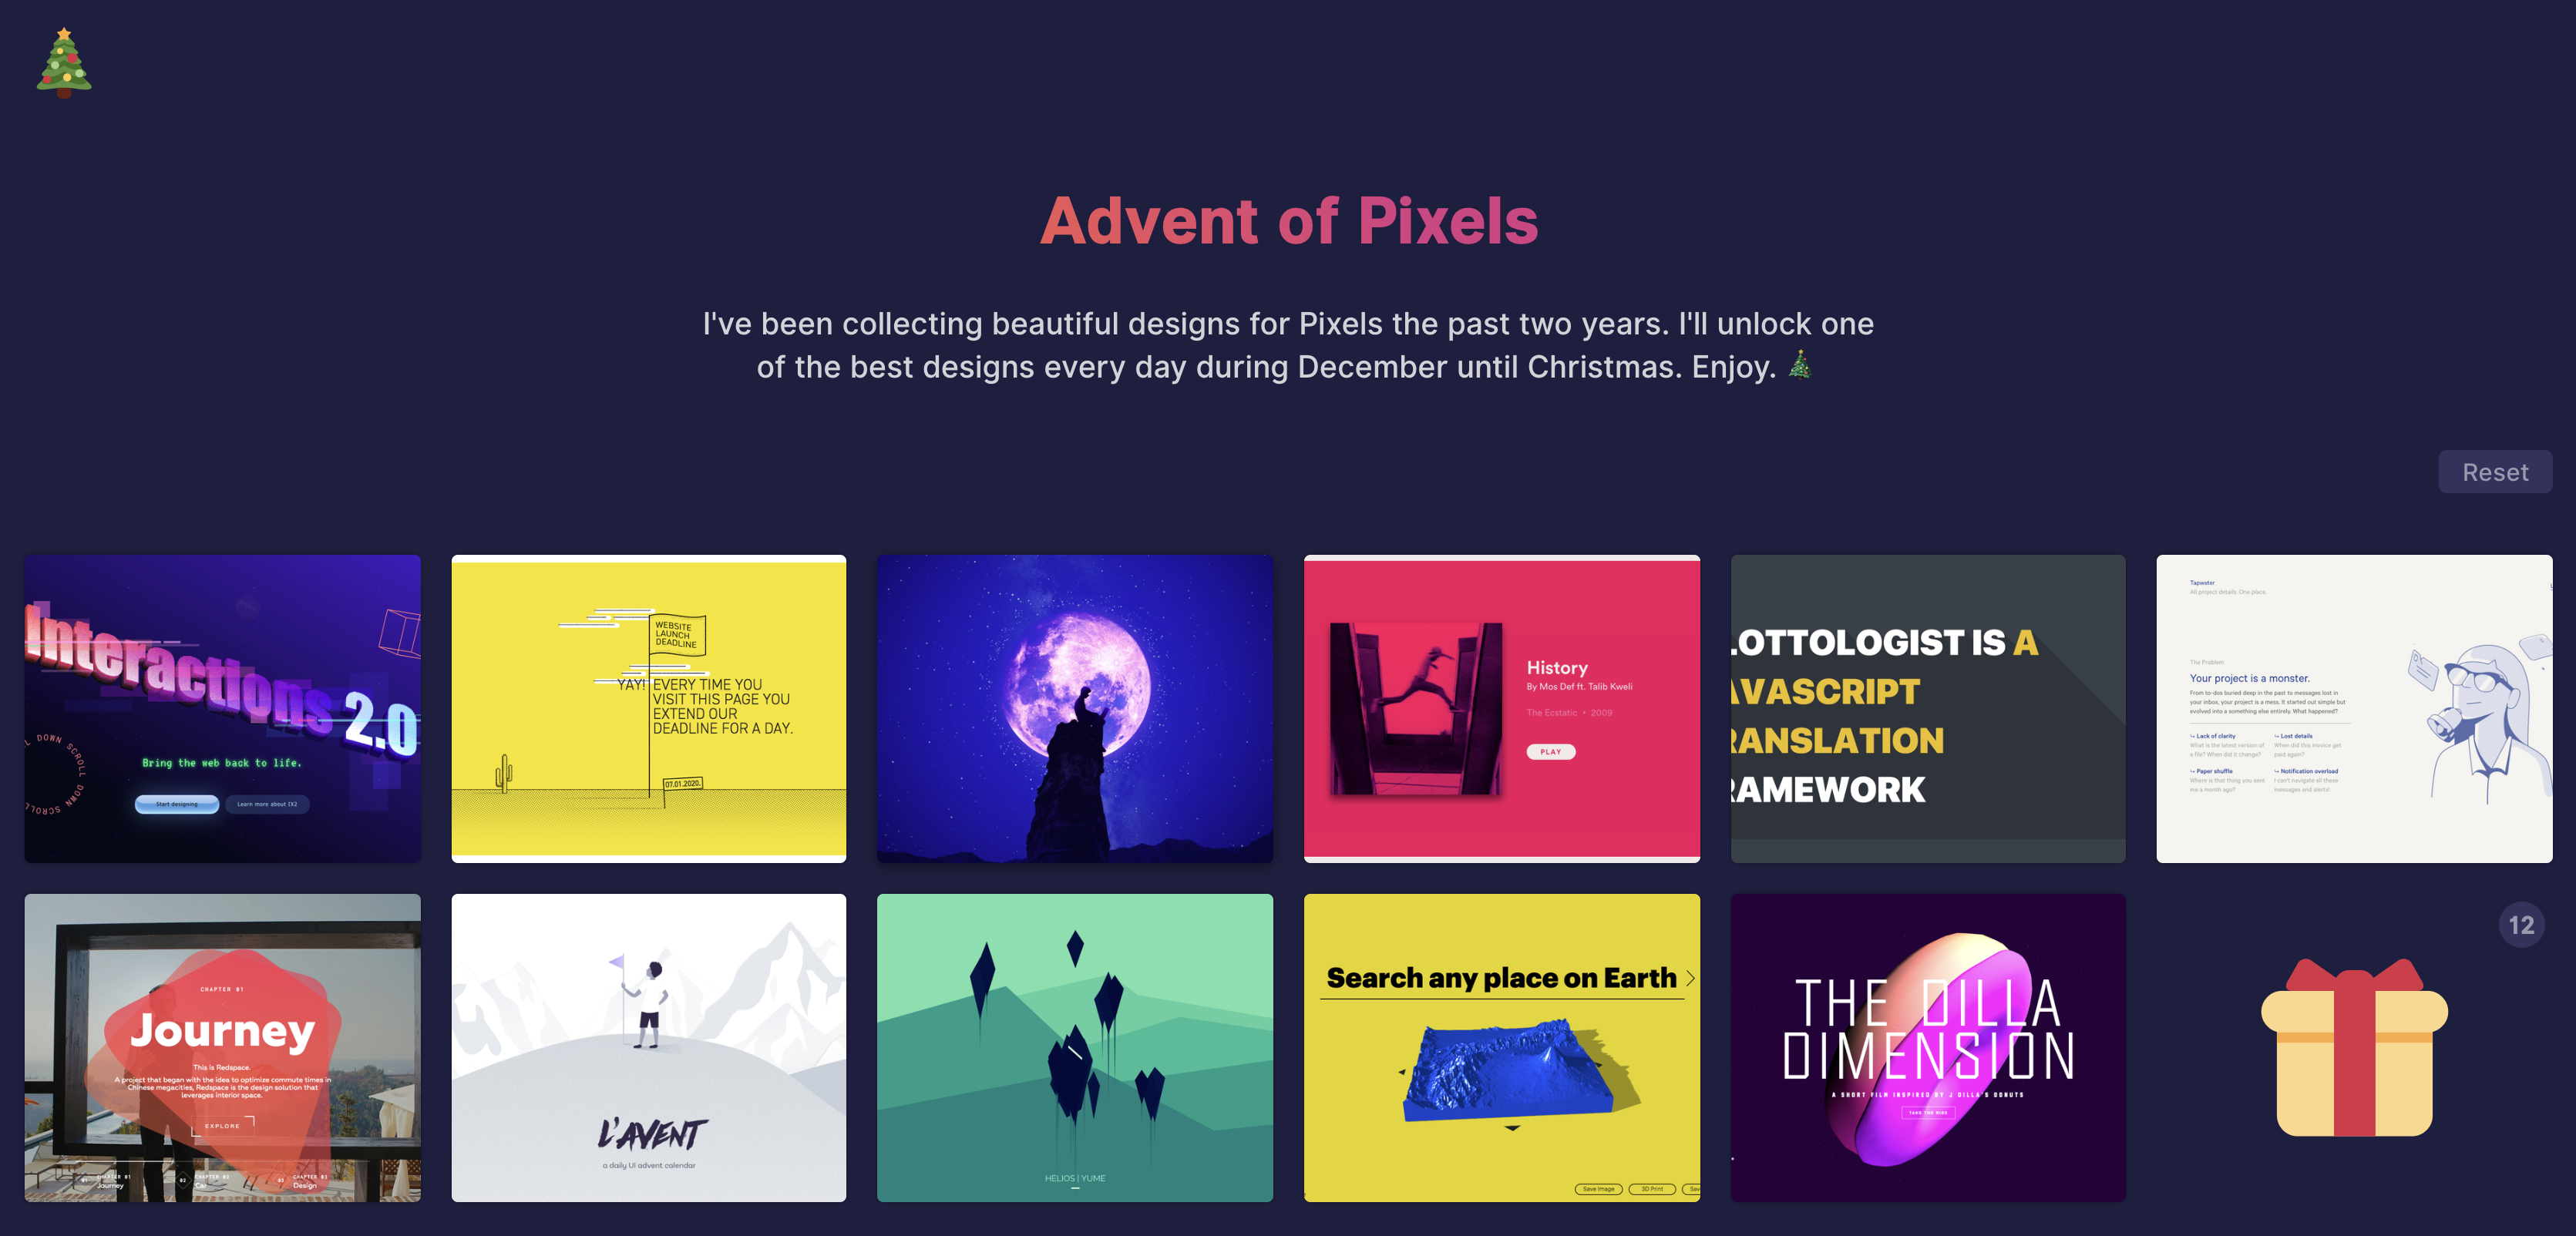 How I Made Advent of Pixels